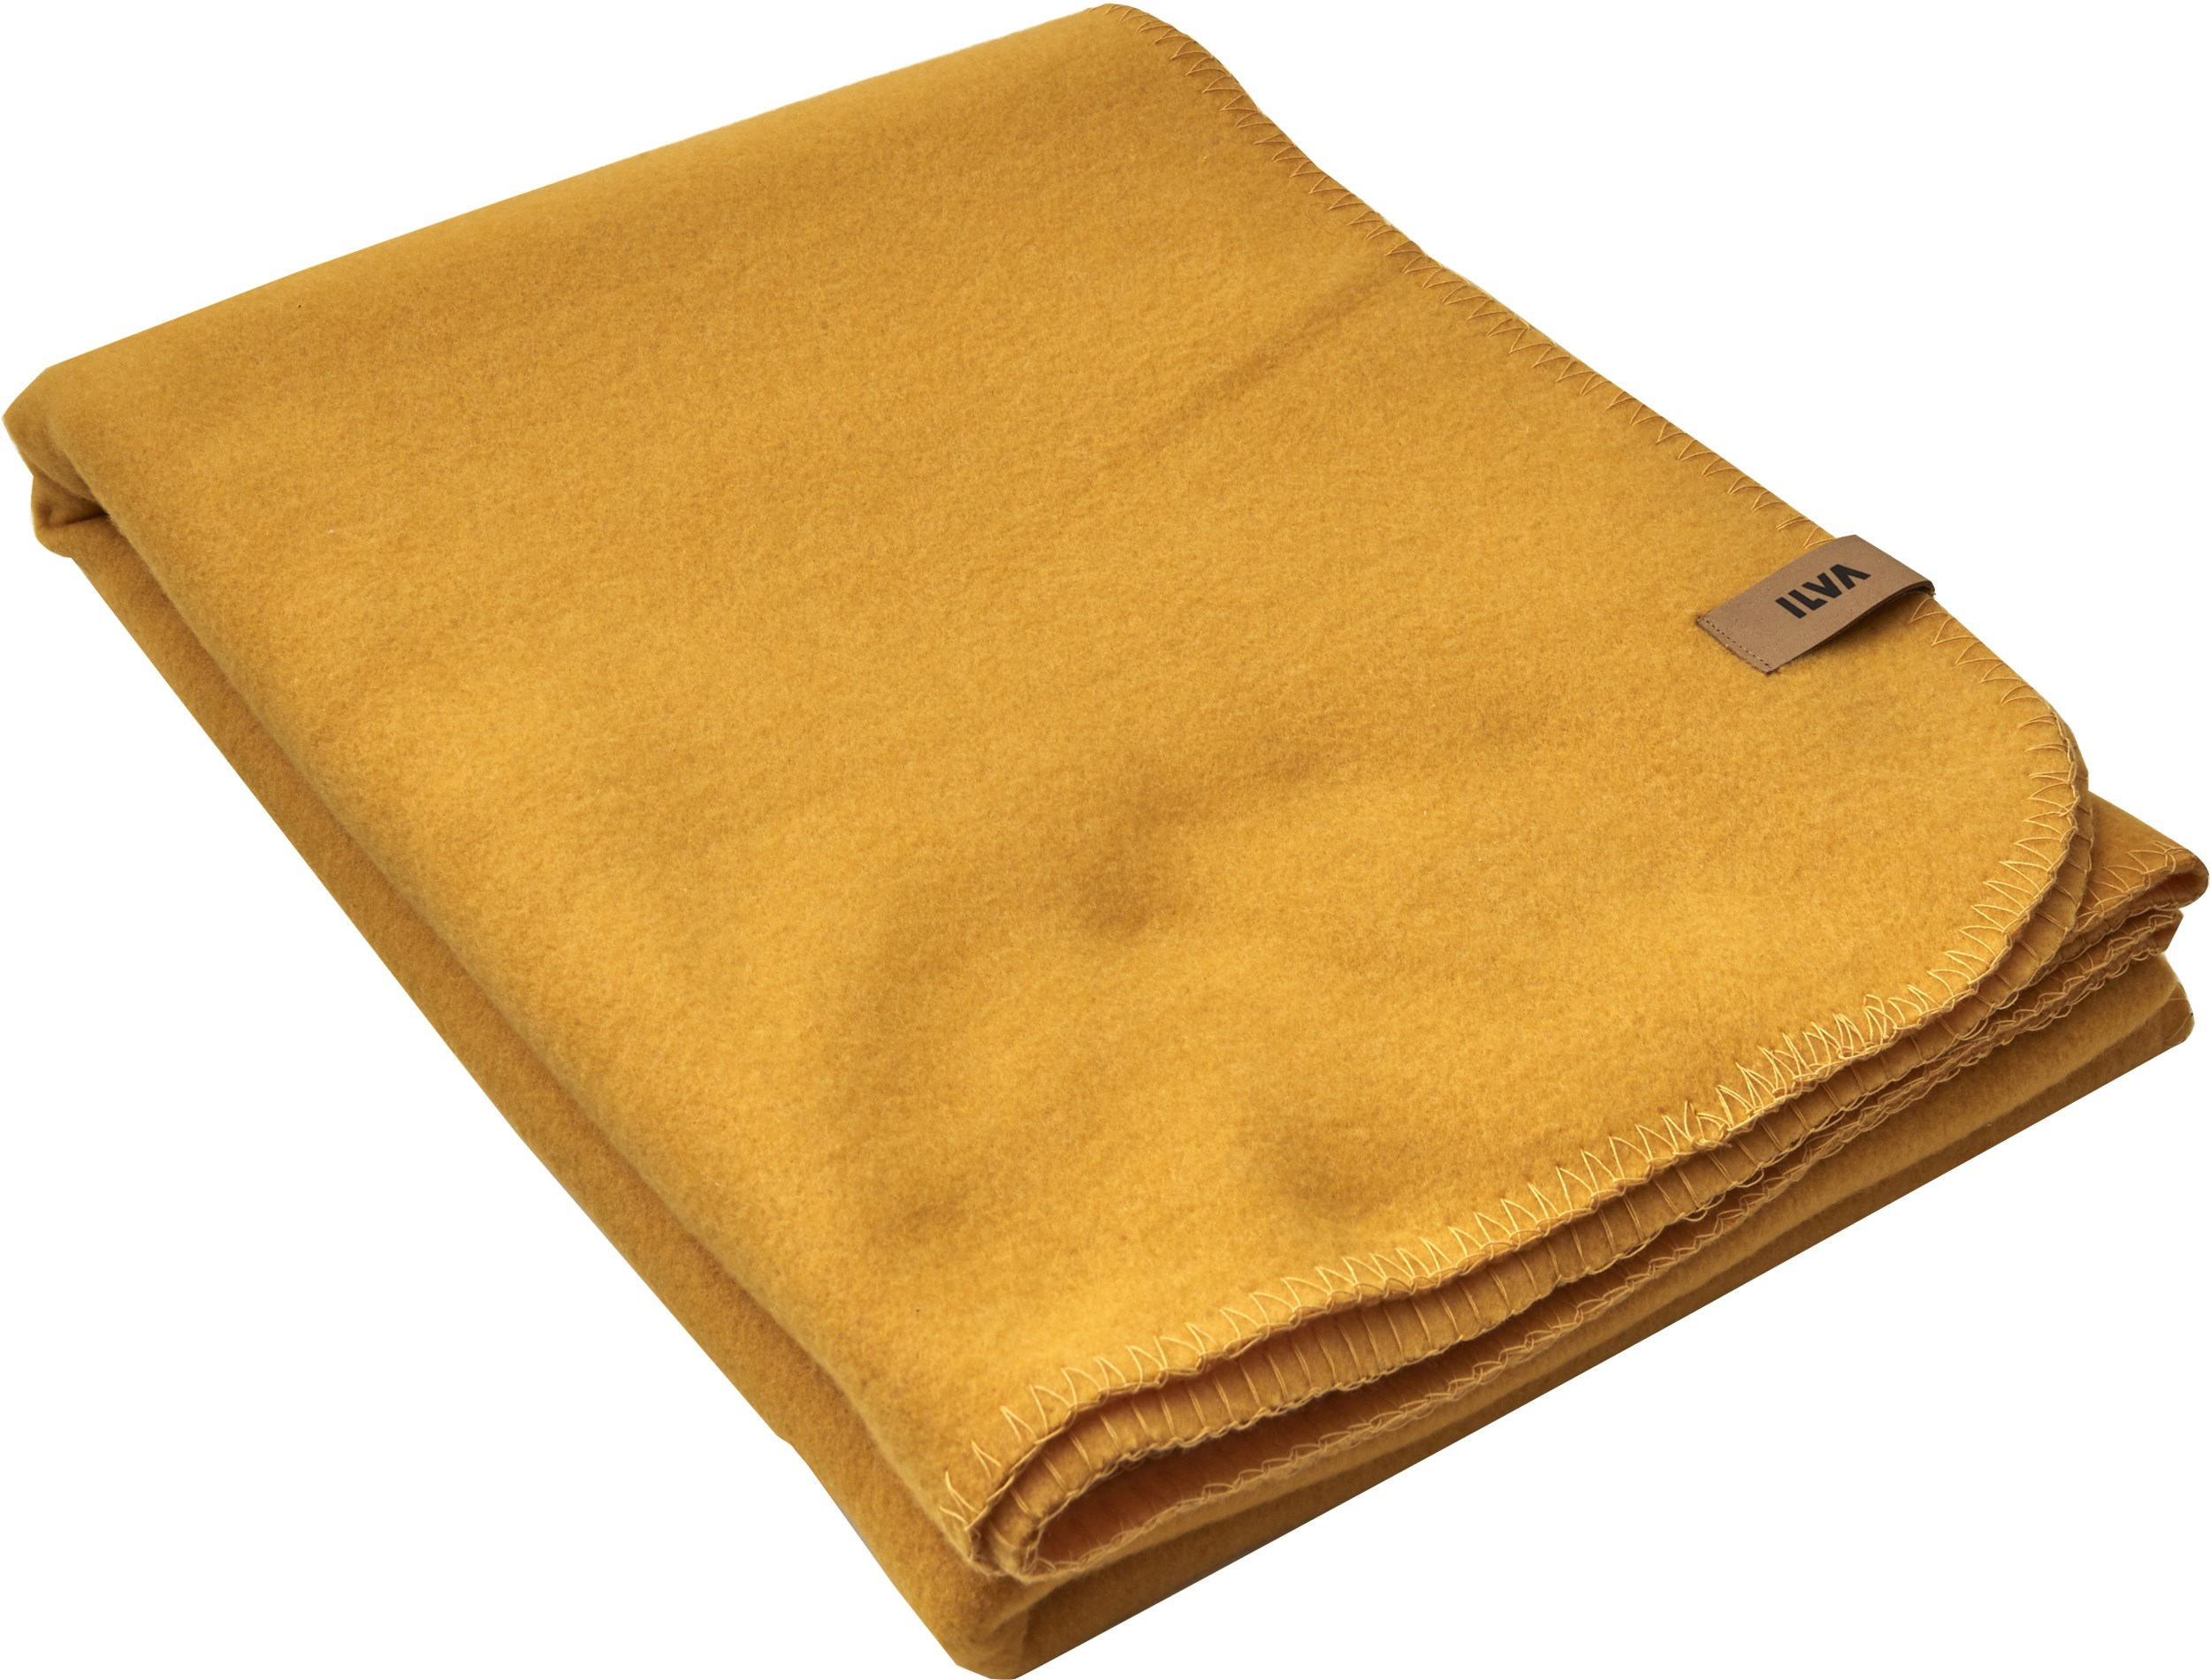 Fleece Pläd 140 x 200 cm - Mustard Yellow polyester